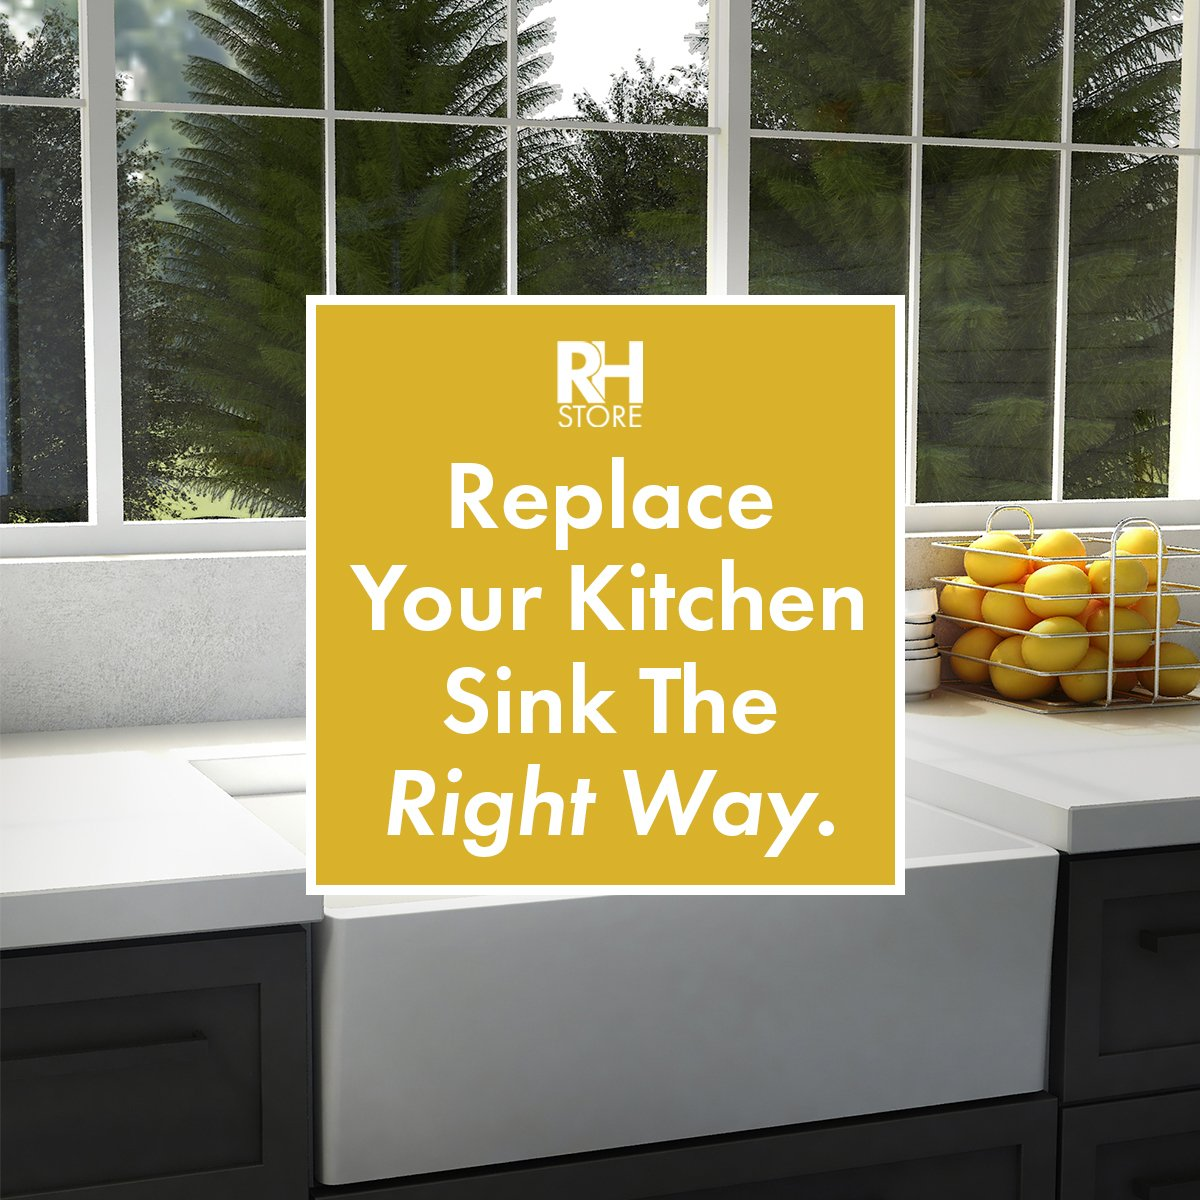 Replace Your Kitchen Sink The Right Way.